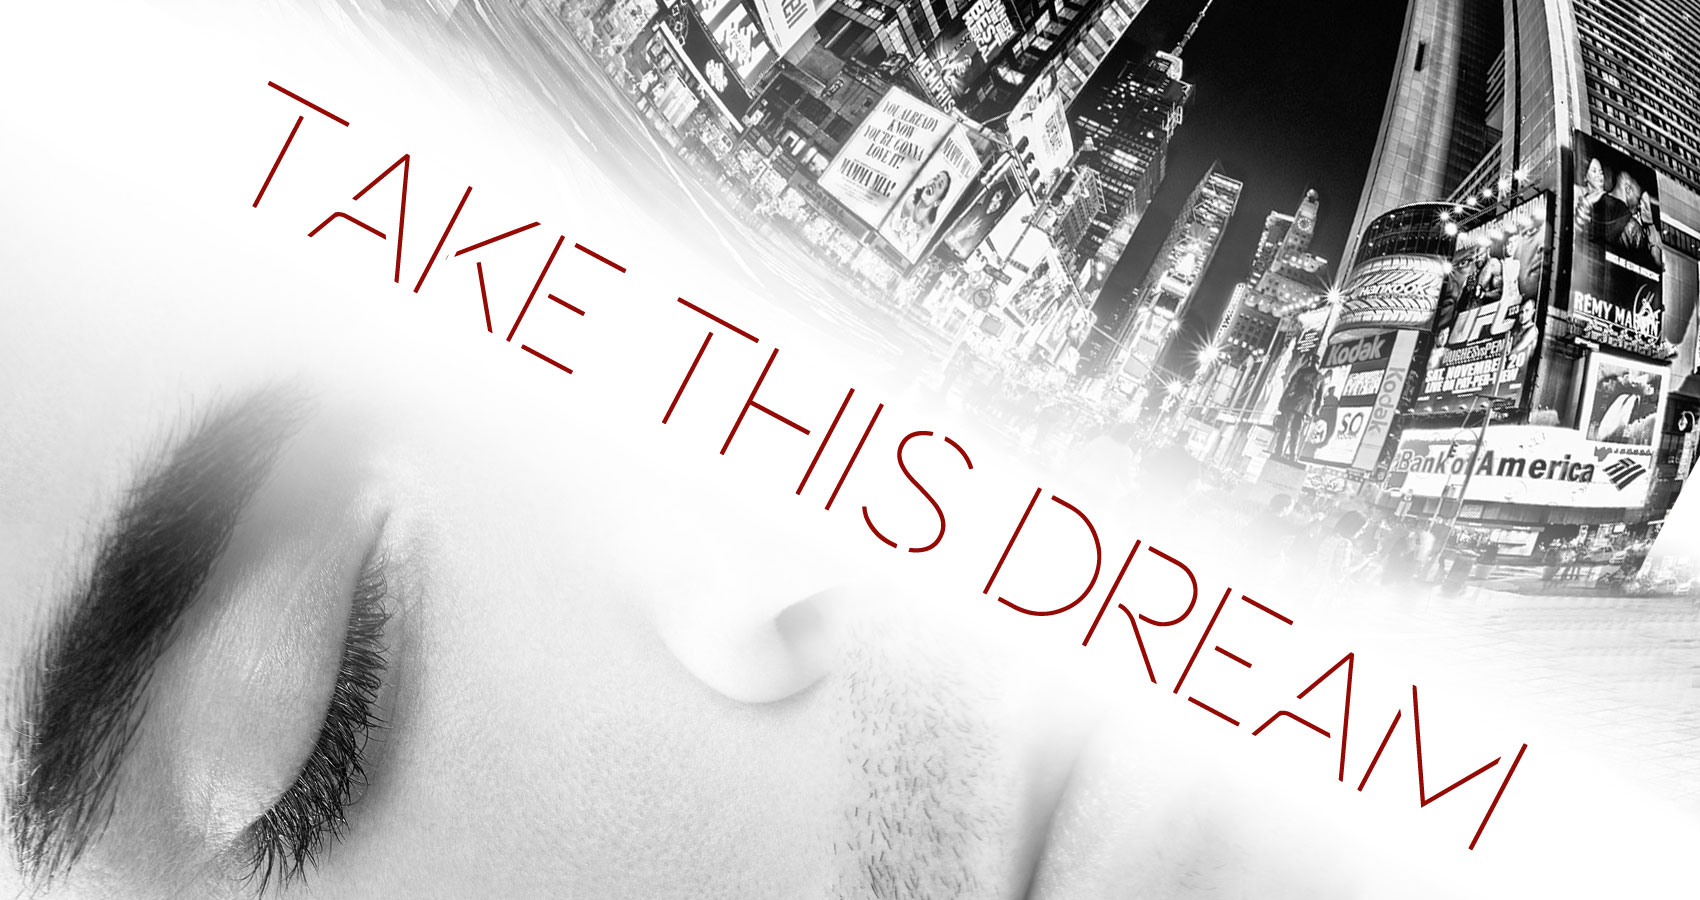 Take this Dream by Don Knowles at Spillwords.com